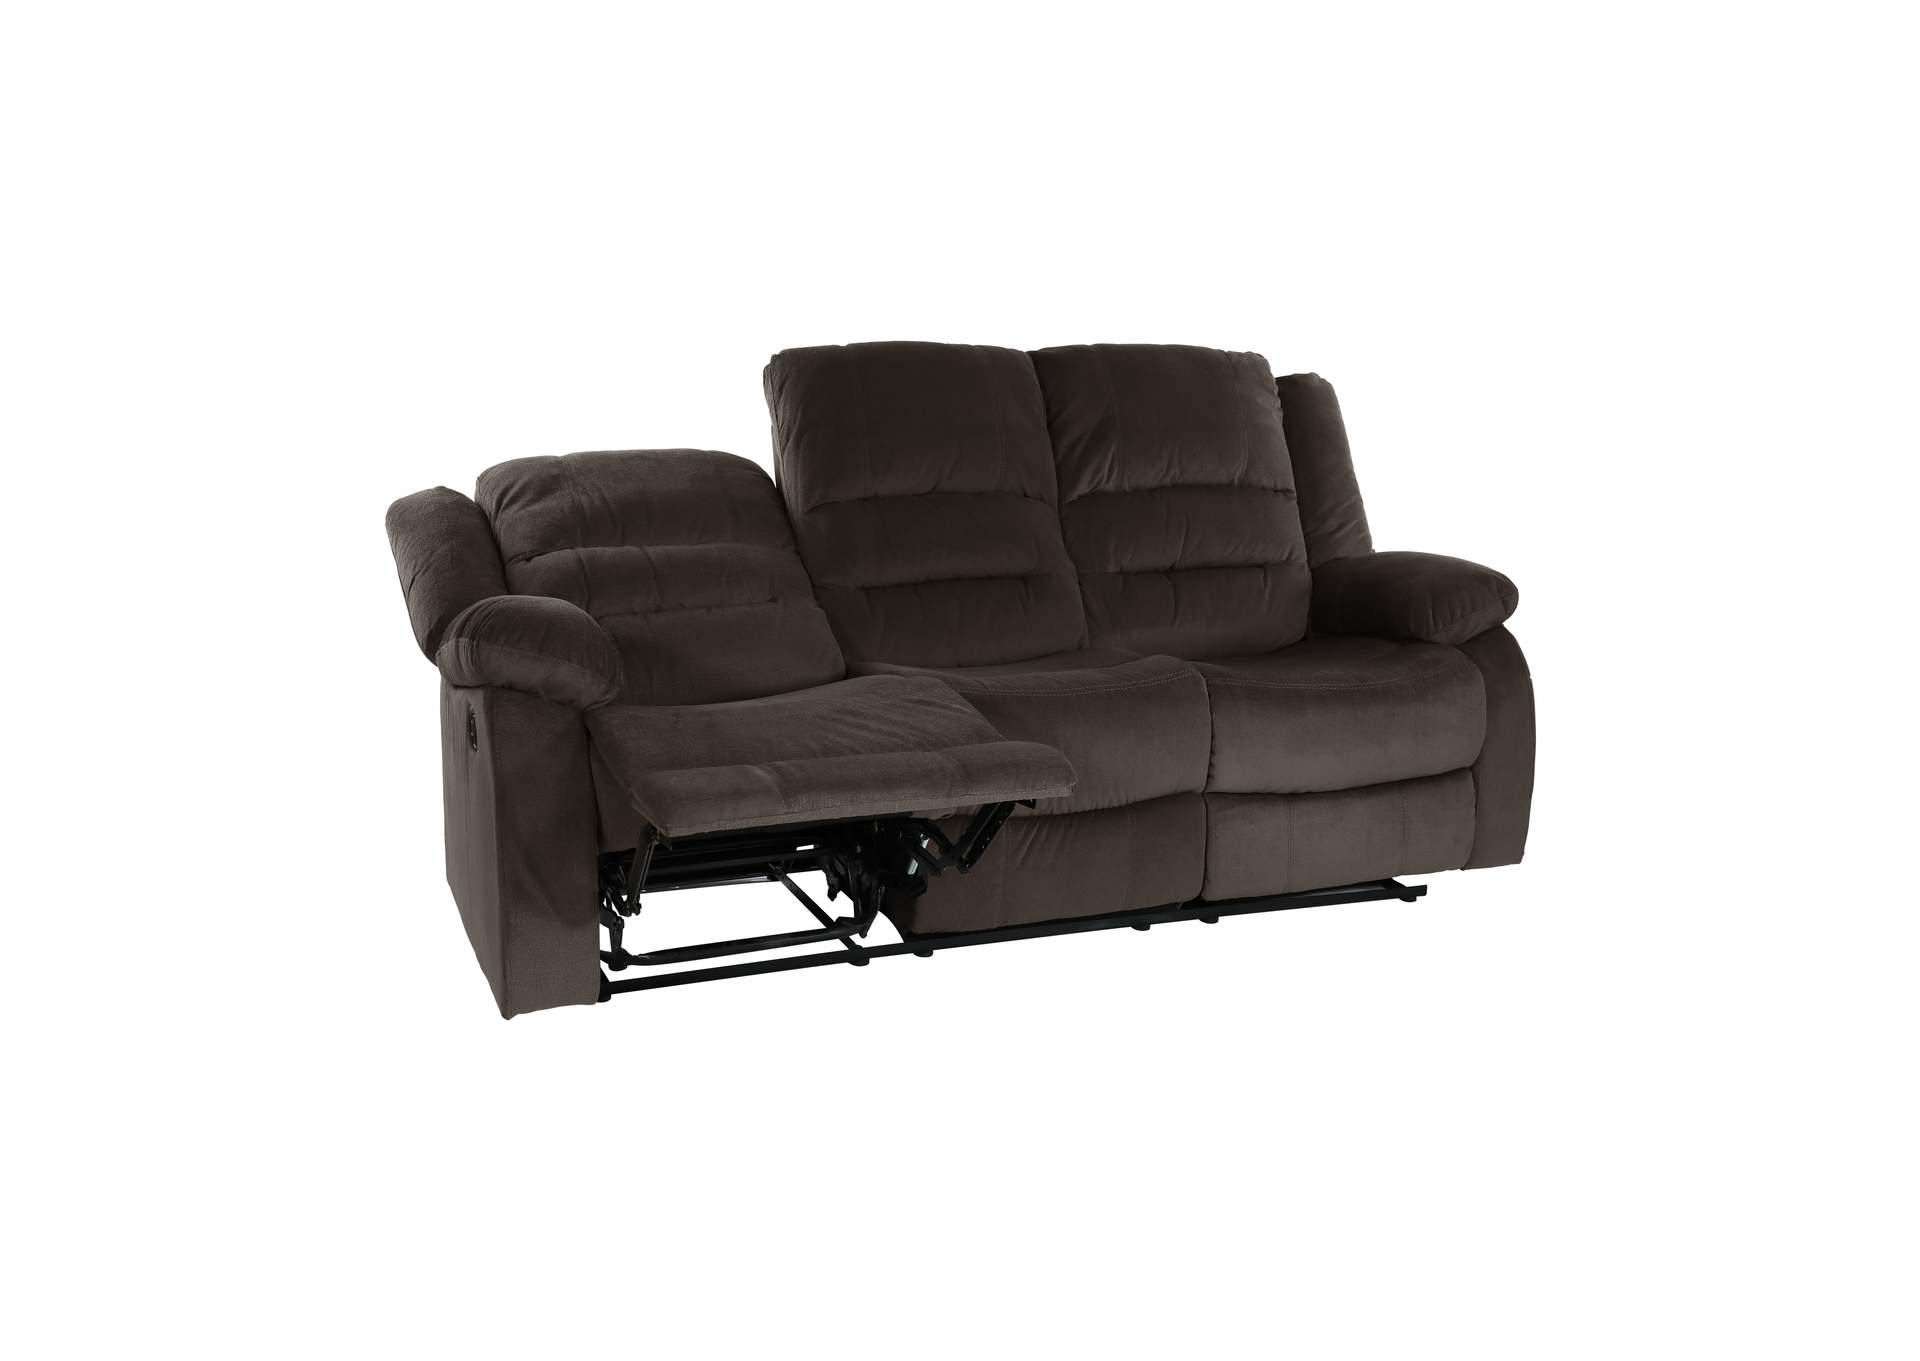 Chocolate Double Reclining Sofa,Homelegance